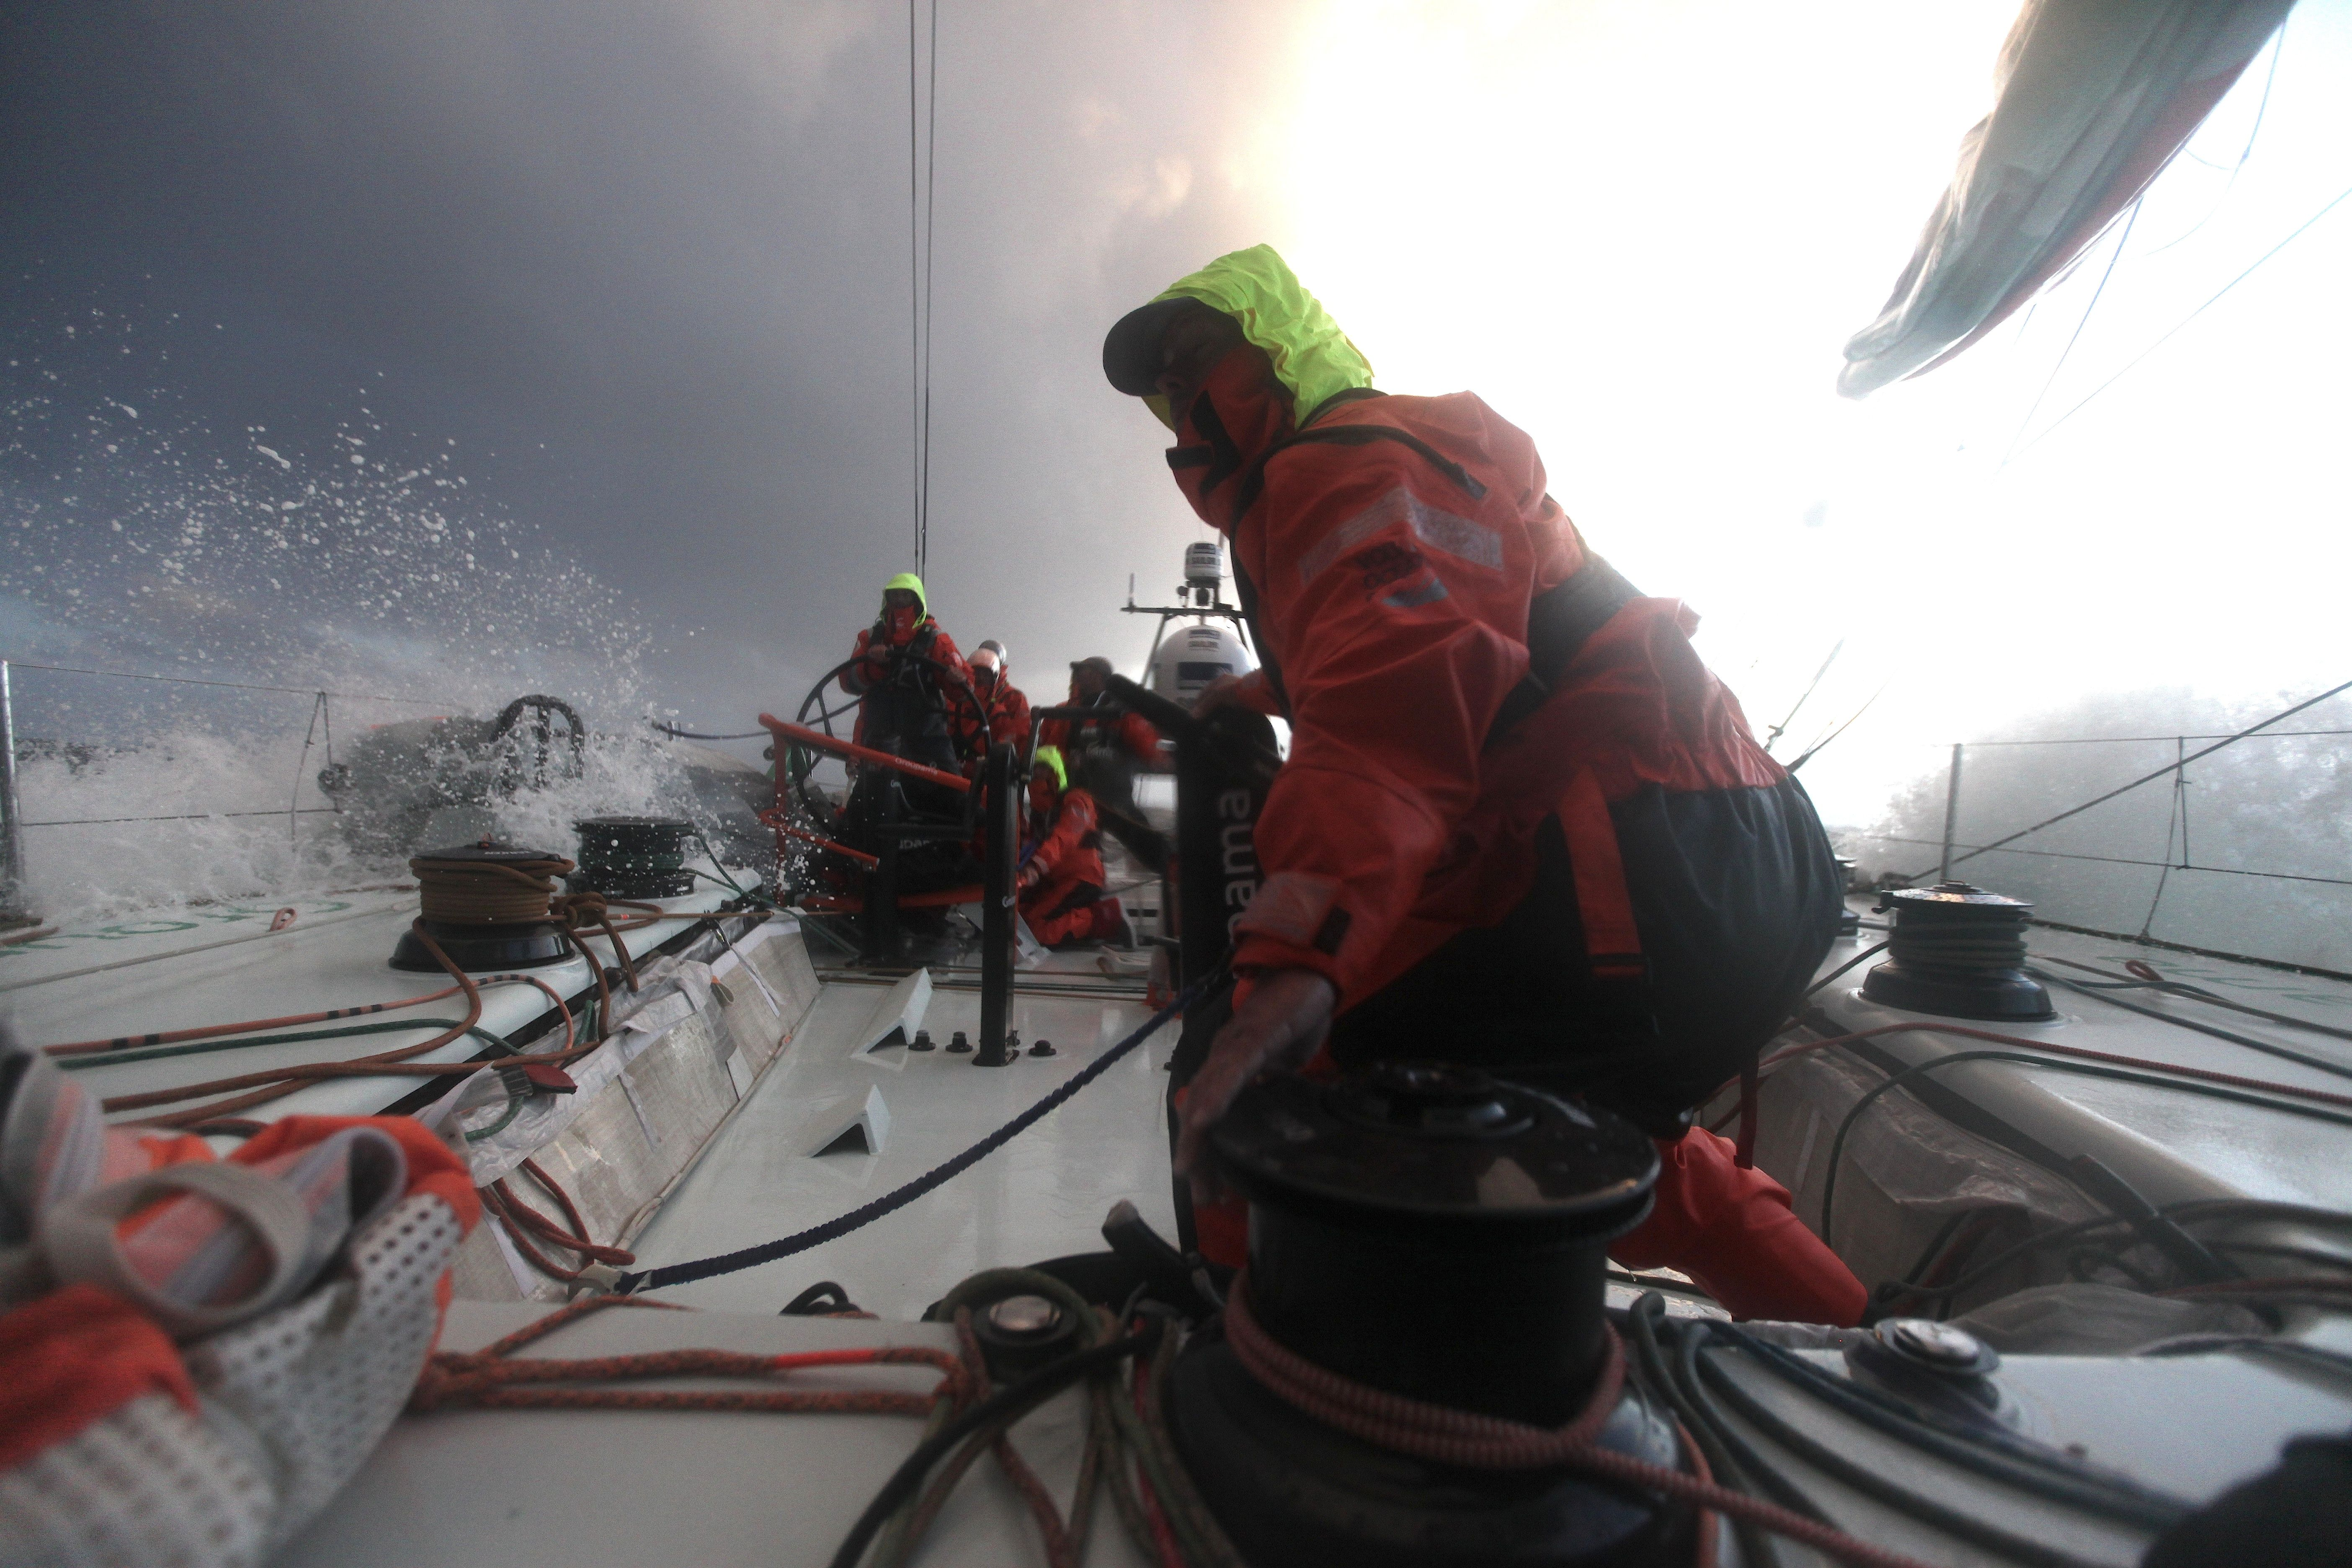 At the approach of Lorient / Thomas Coville / Credits : Yann Riou